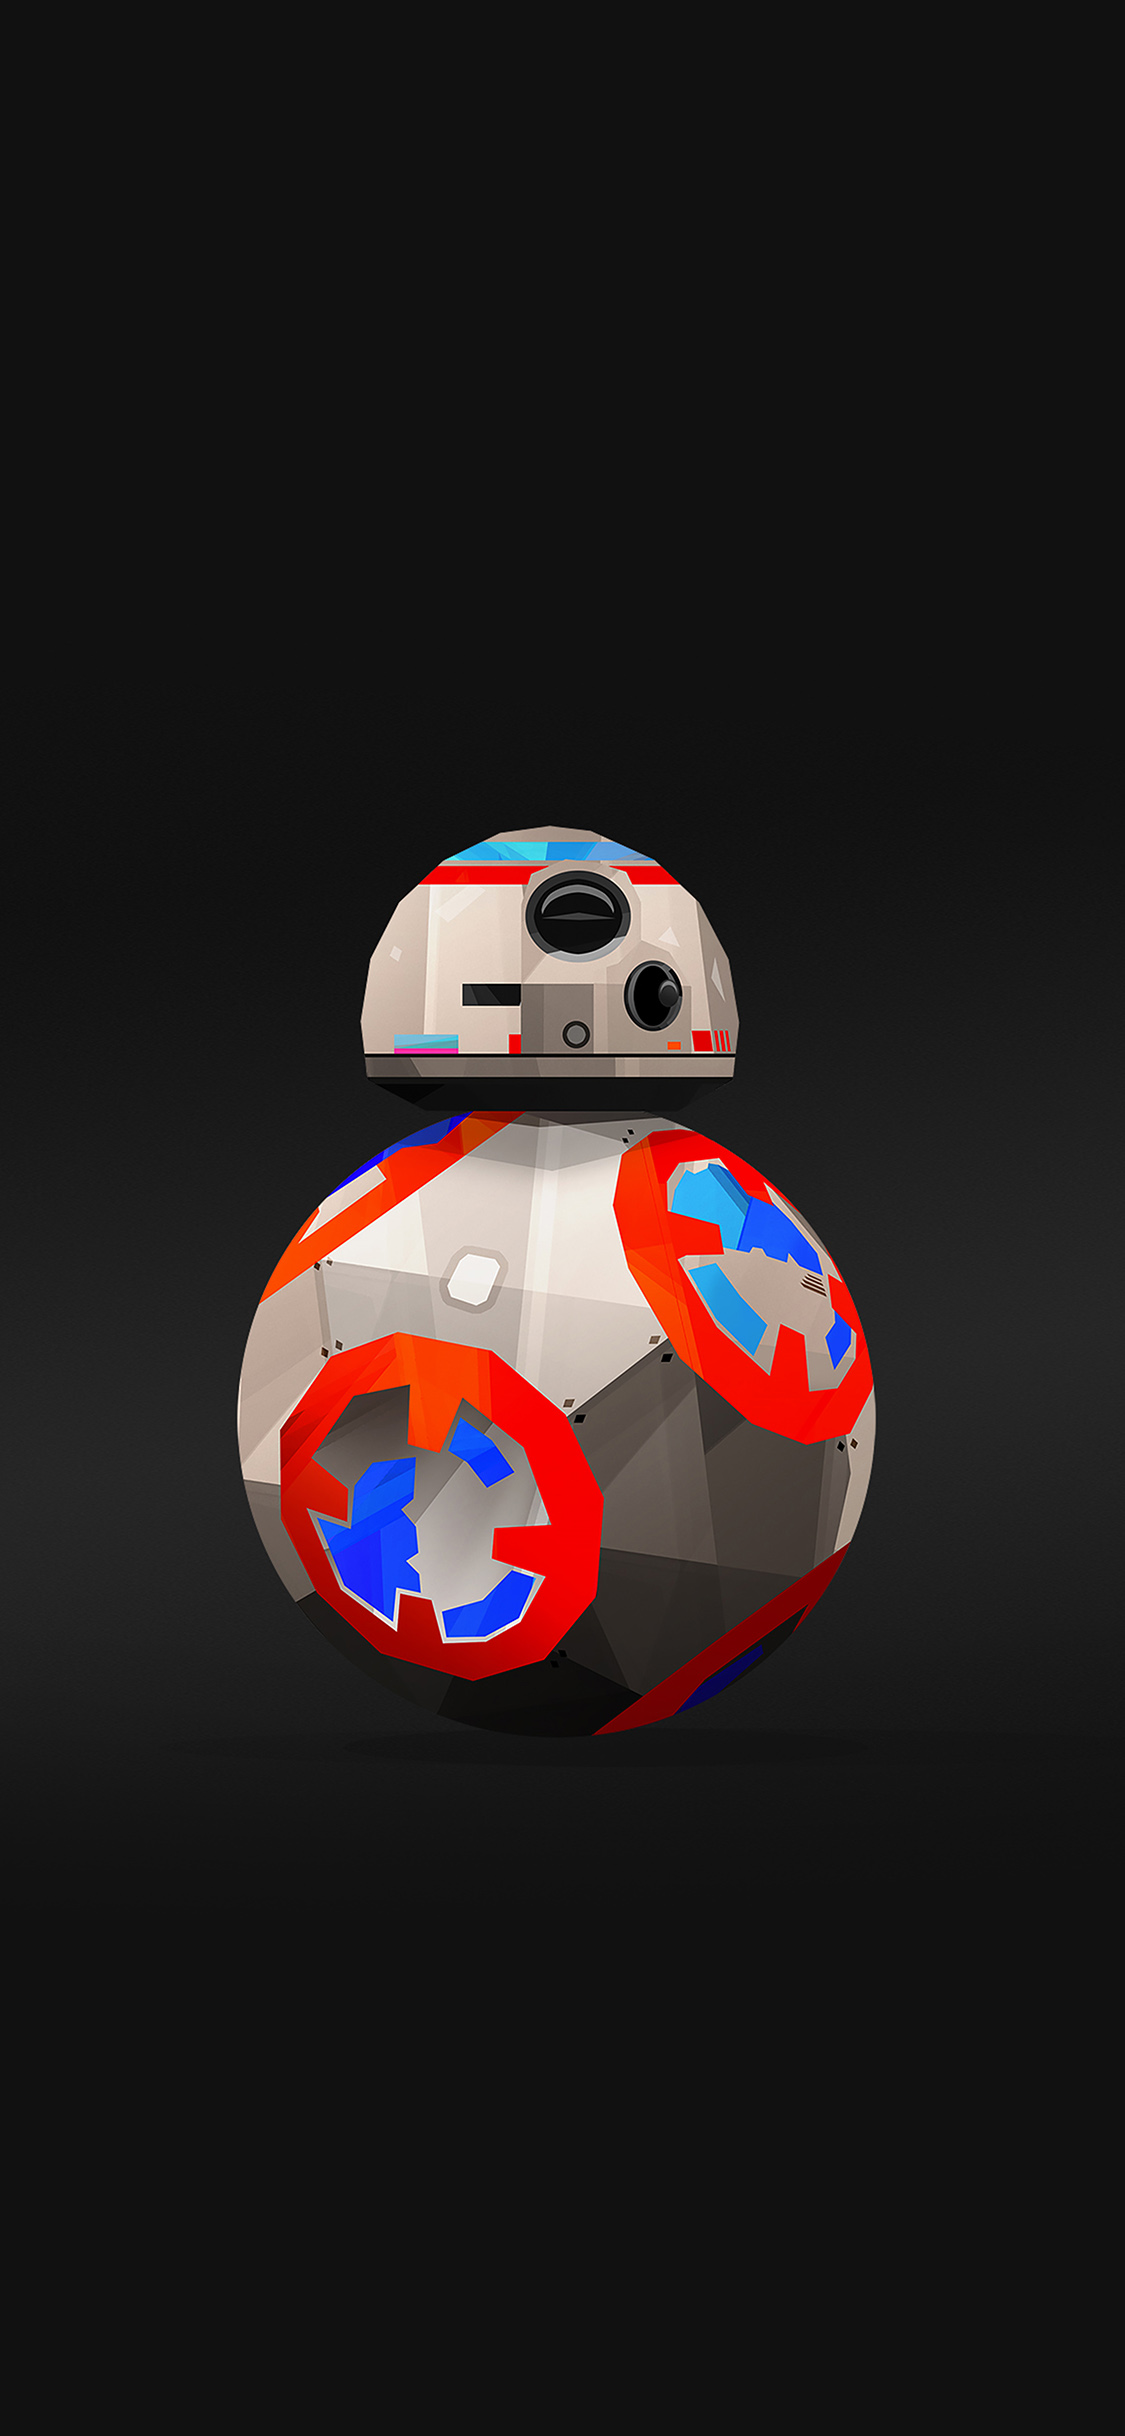 Baby Brother Droid - Cool Star Wars Wallpapers Iphone , HD Wallpaper & Backgrounds